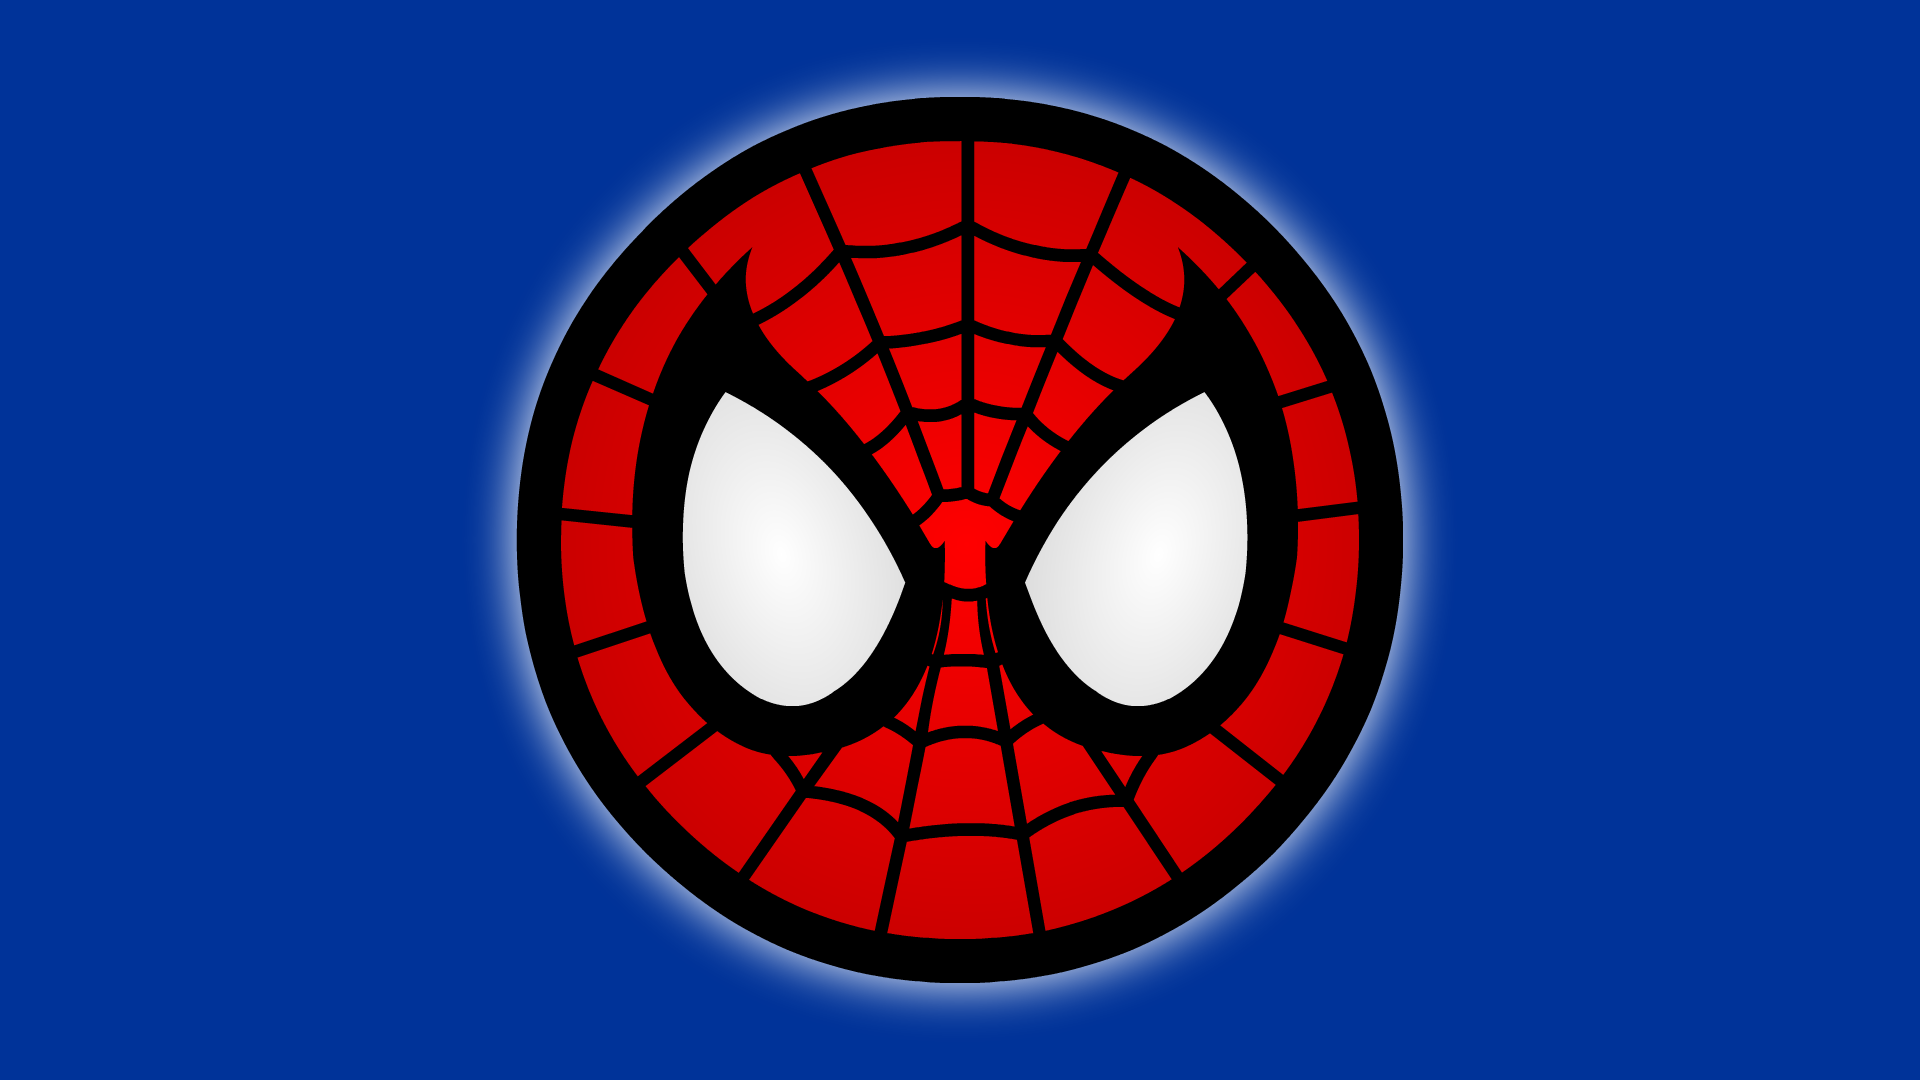 classic spiderman symbol i - photo #21